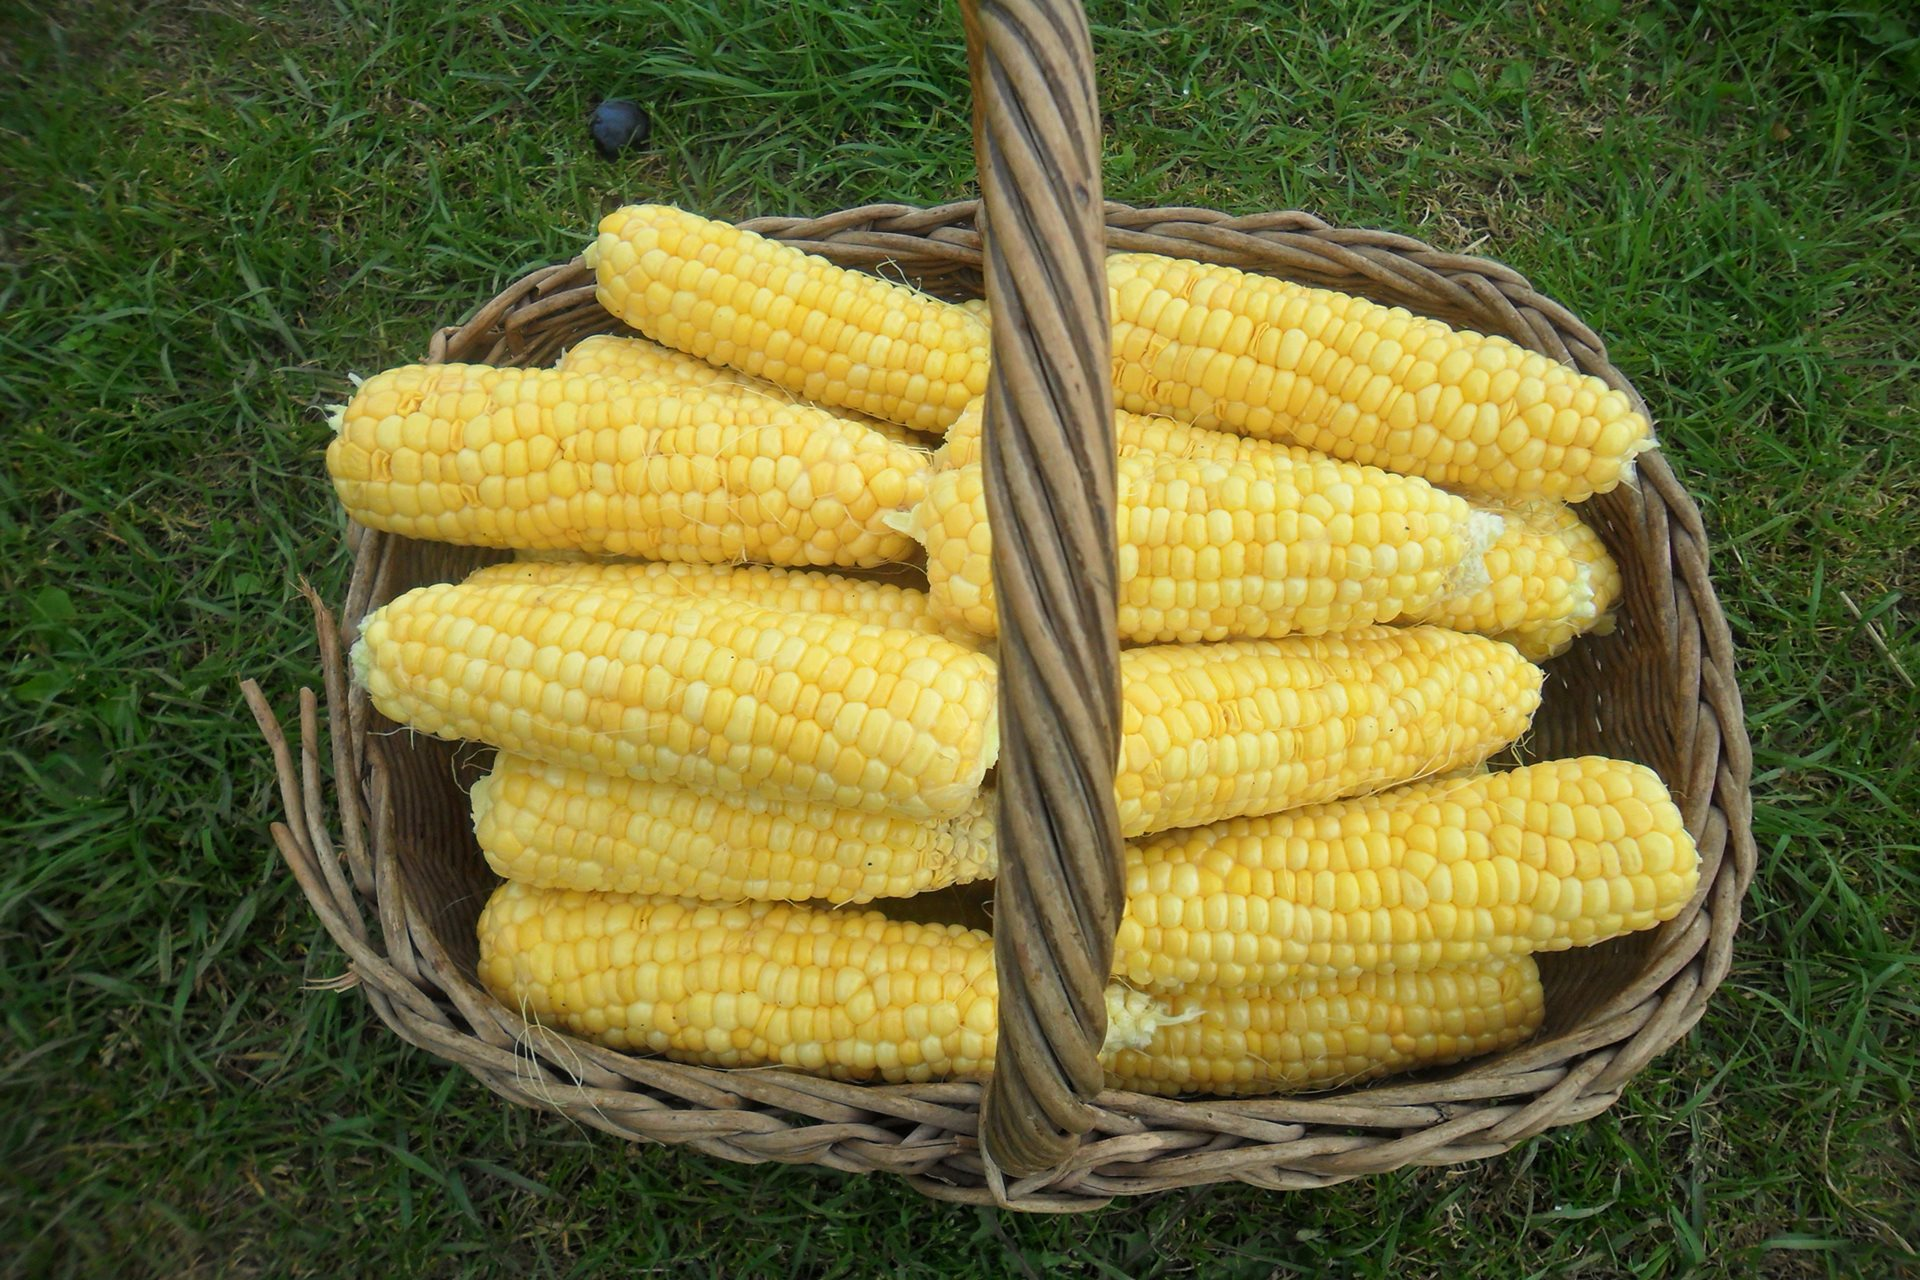 sweet corn basket hd wallpaper images picture download